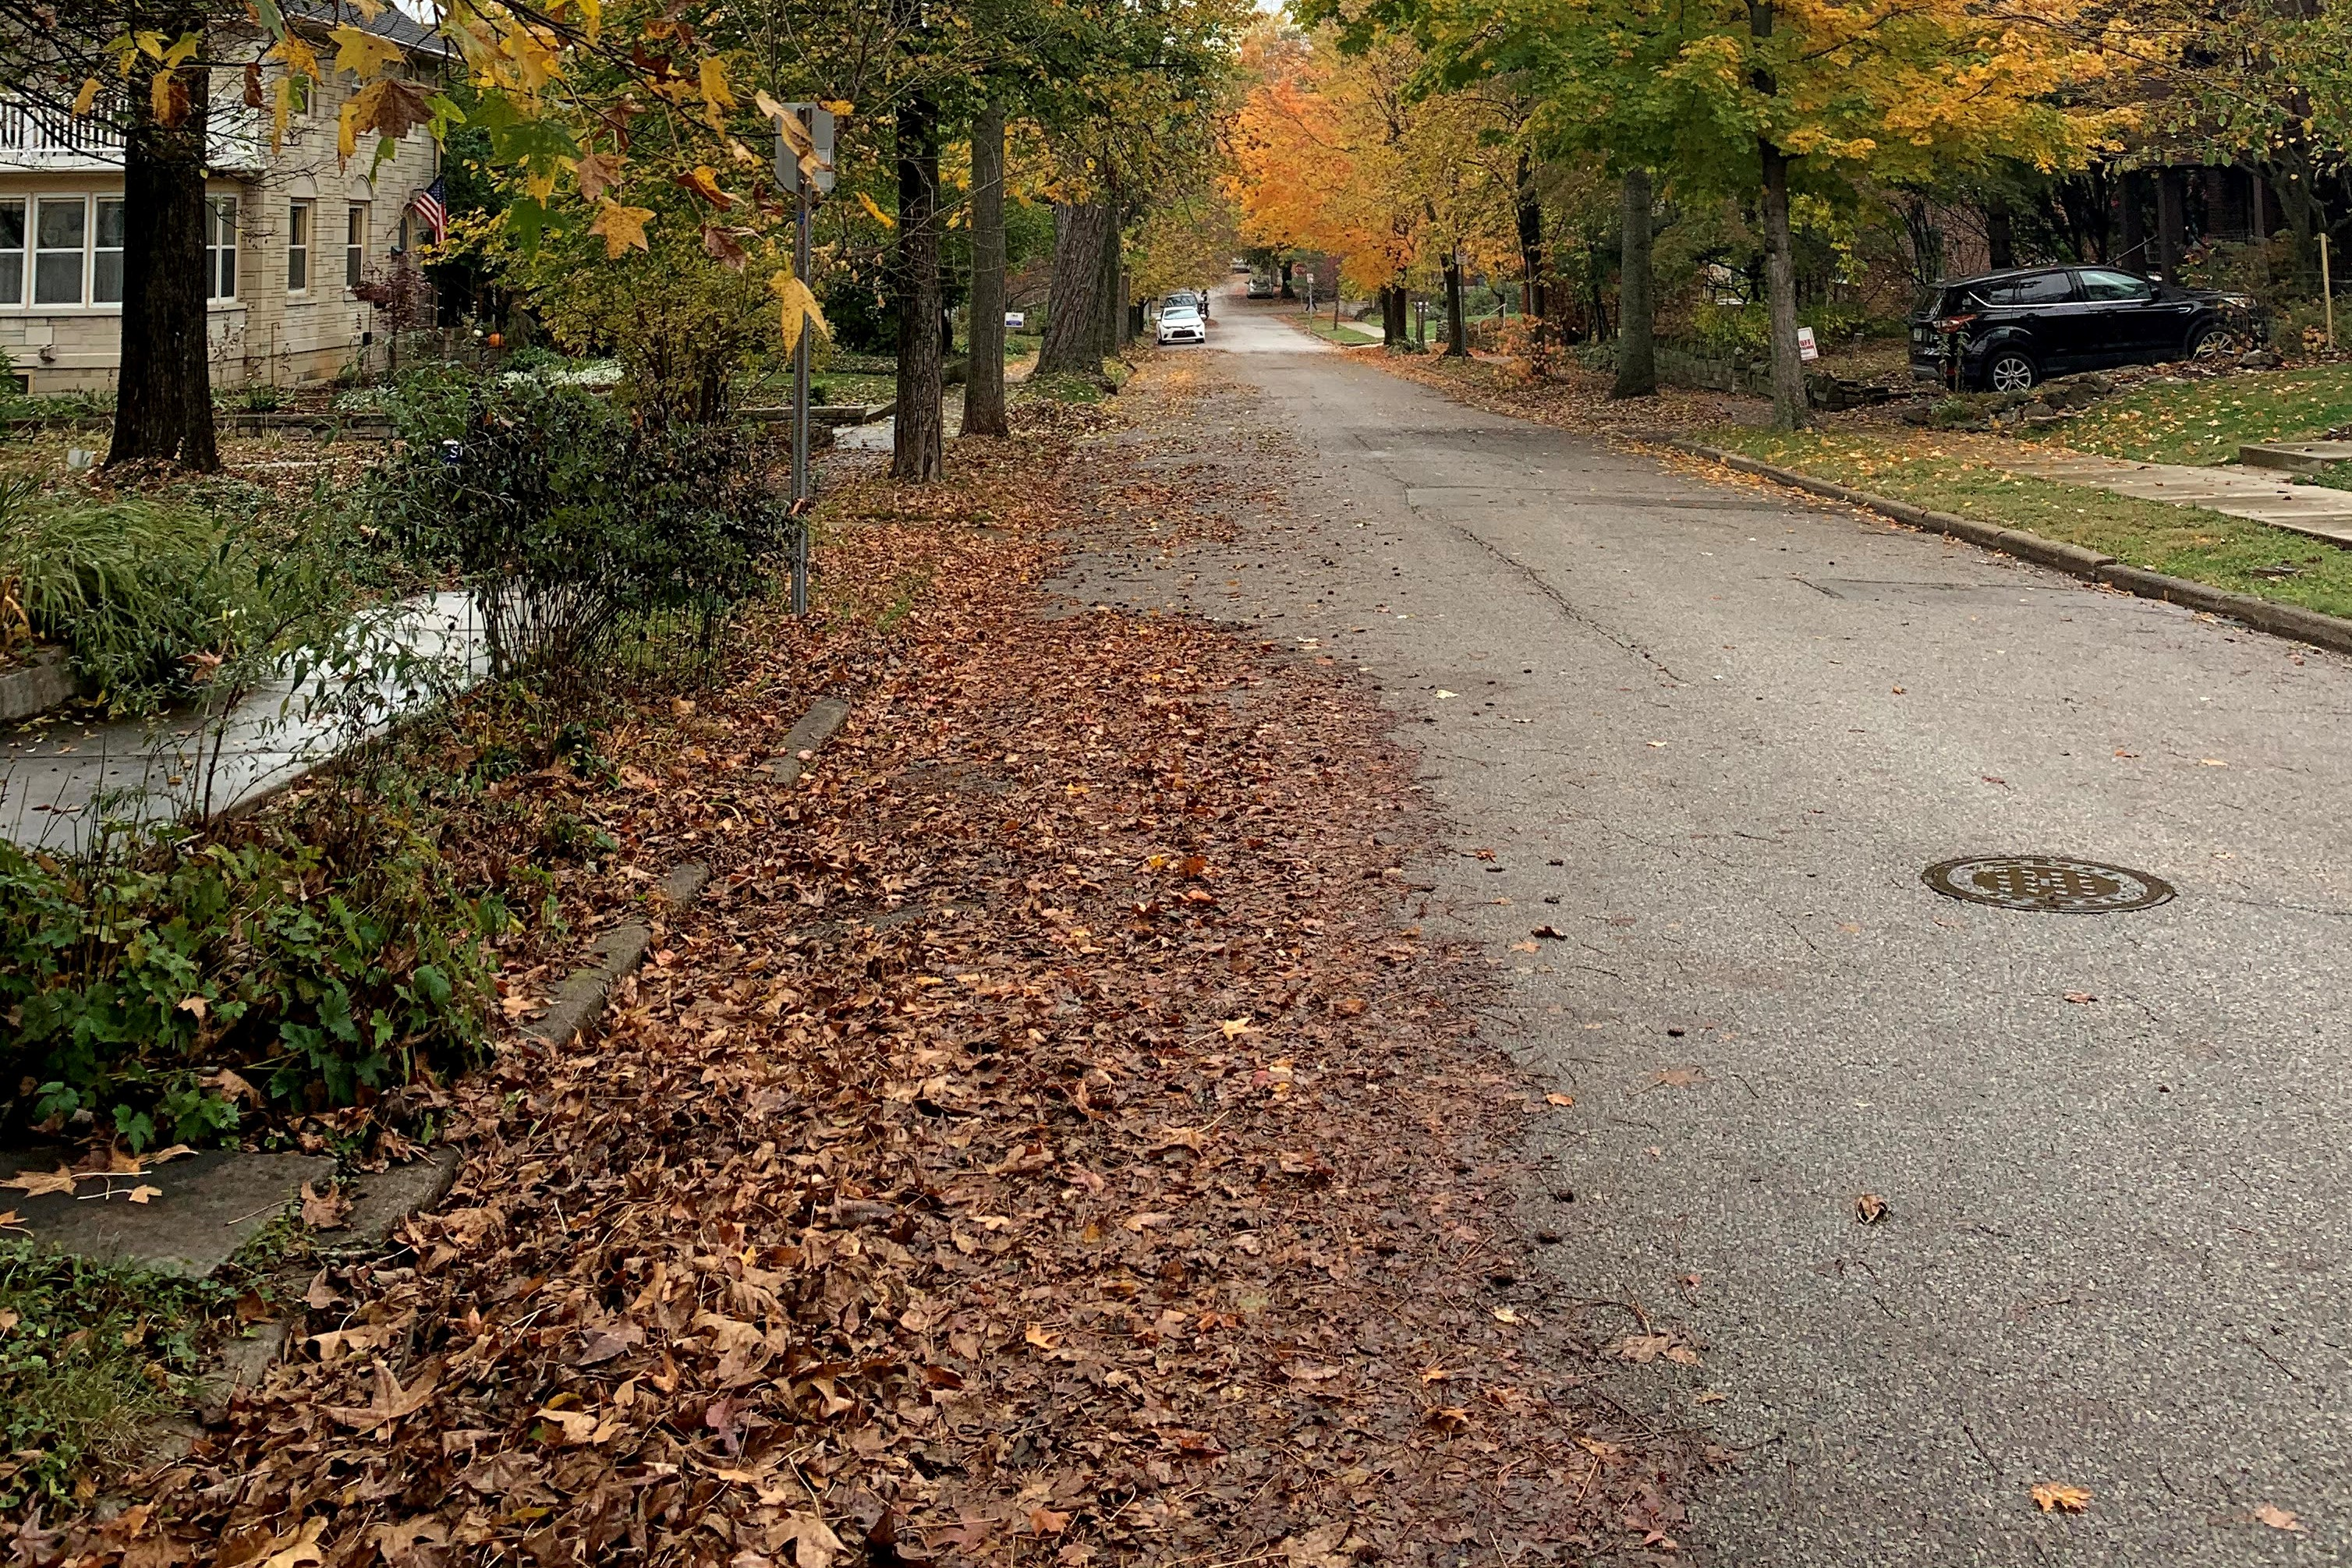 A photo of autumn leaves and yard waste in a Bloomington street.